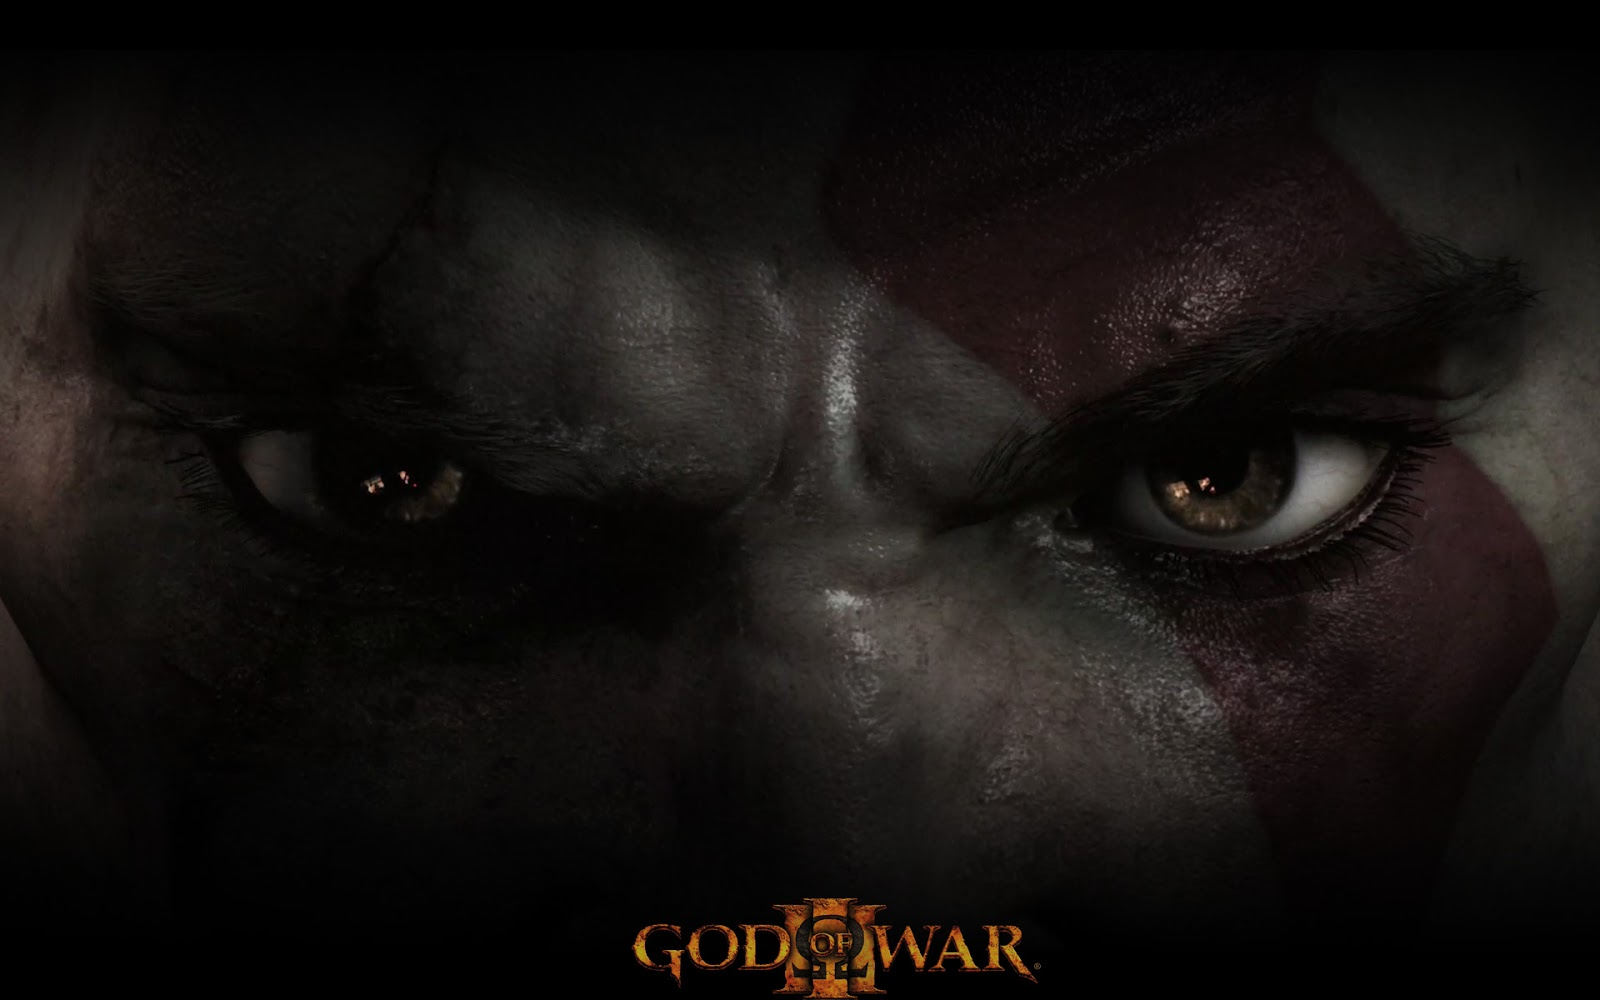 god of war ps3 ps2 all time wallpapers collection - set 4 - hd